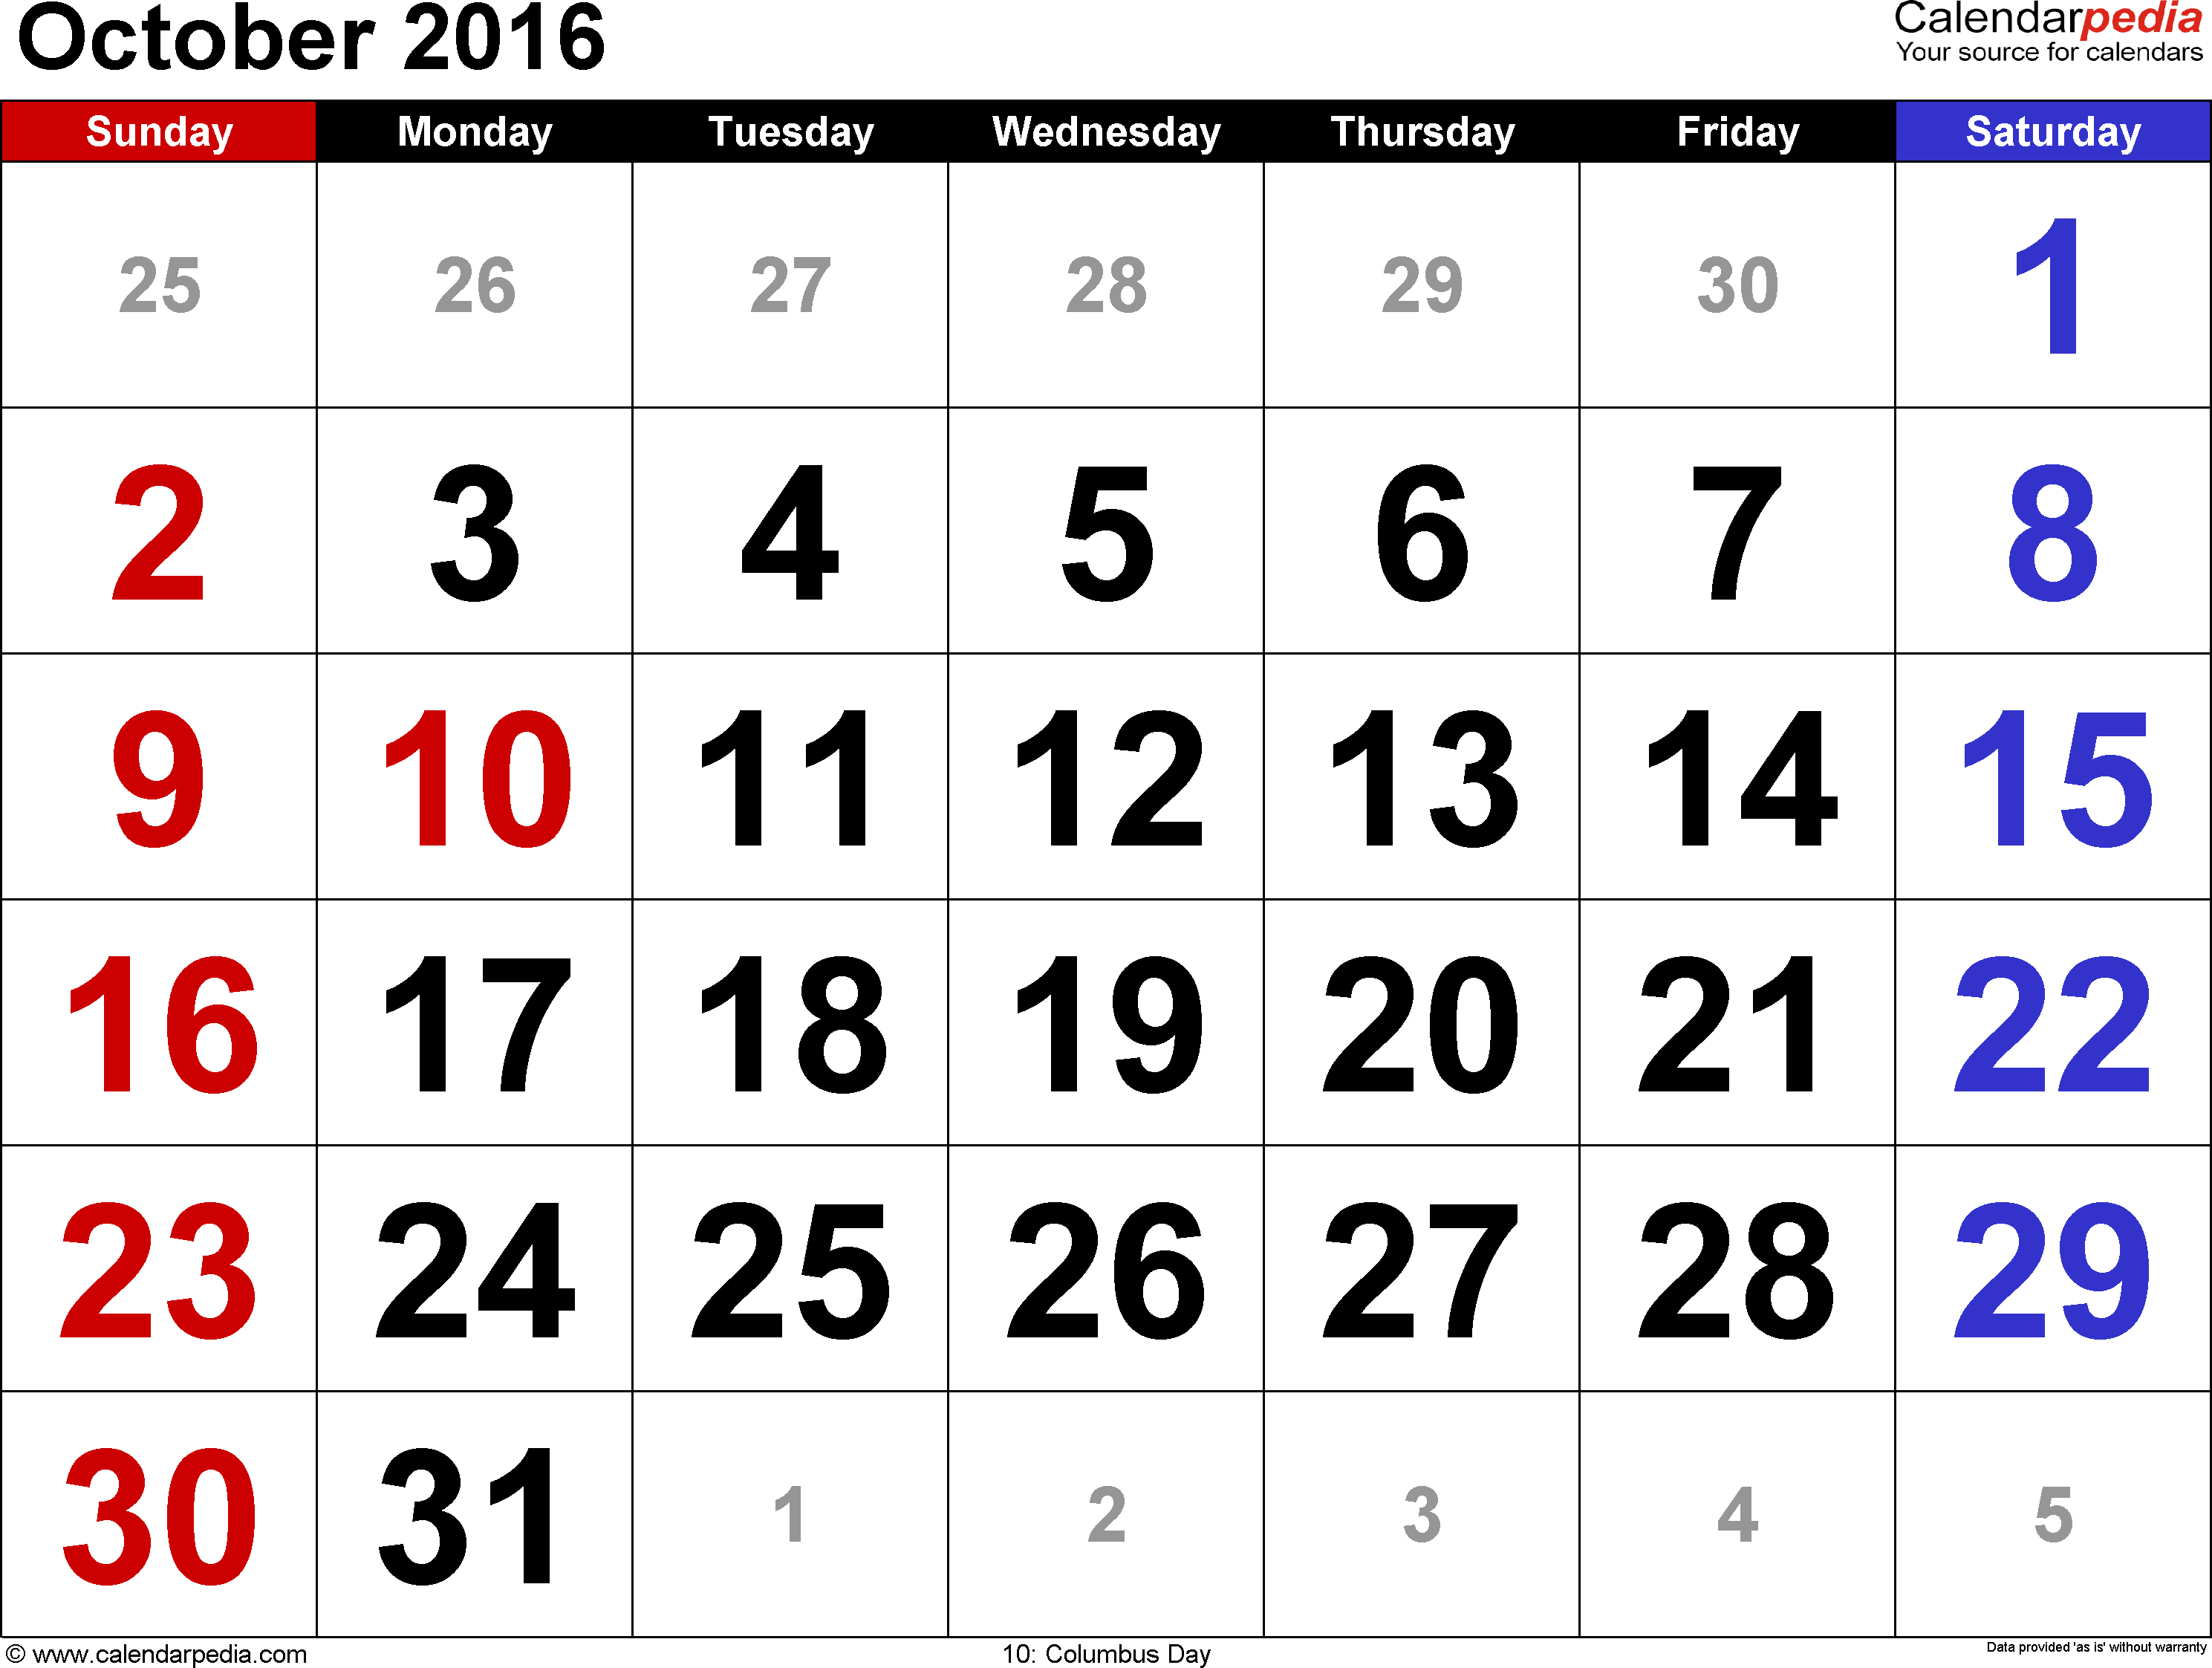 October 2016 calendar, landscape orientation, large numerals, available as printable templates for Word, Excel and PDF